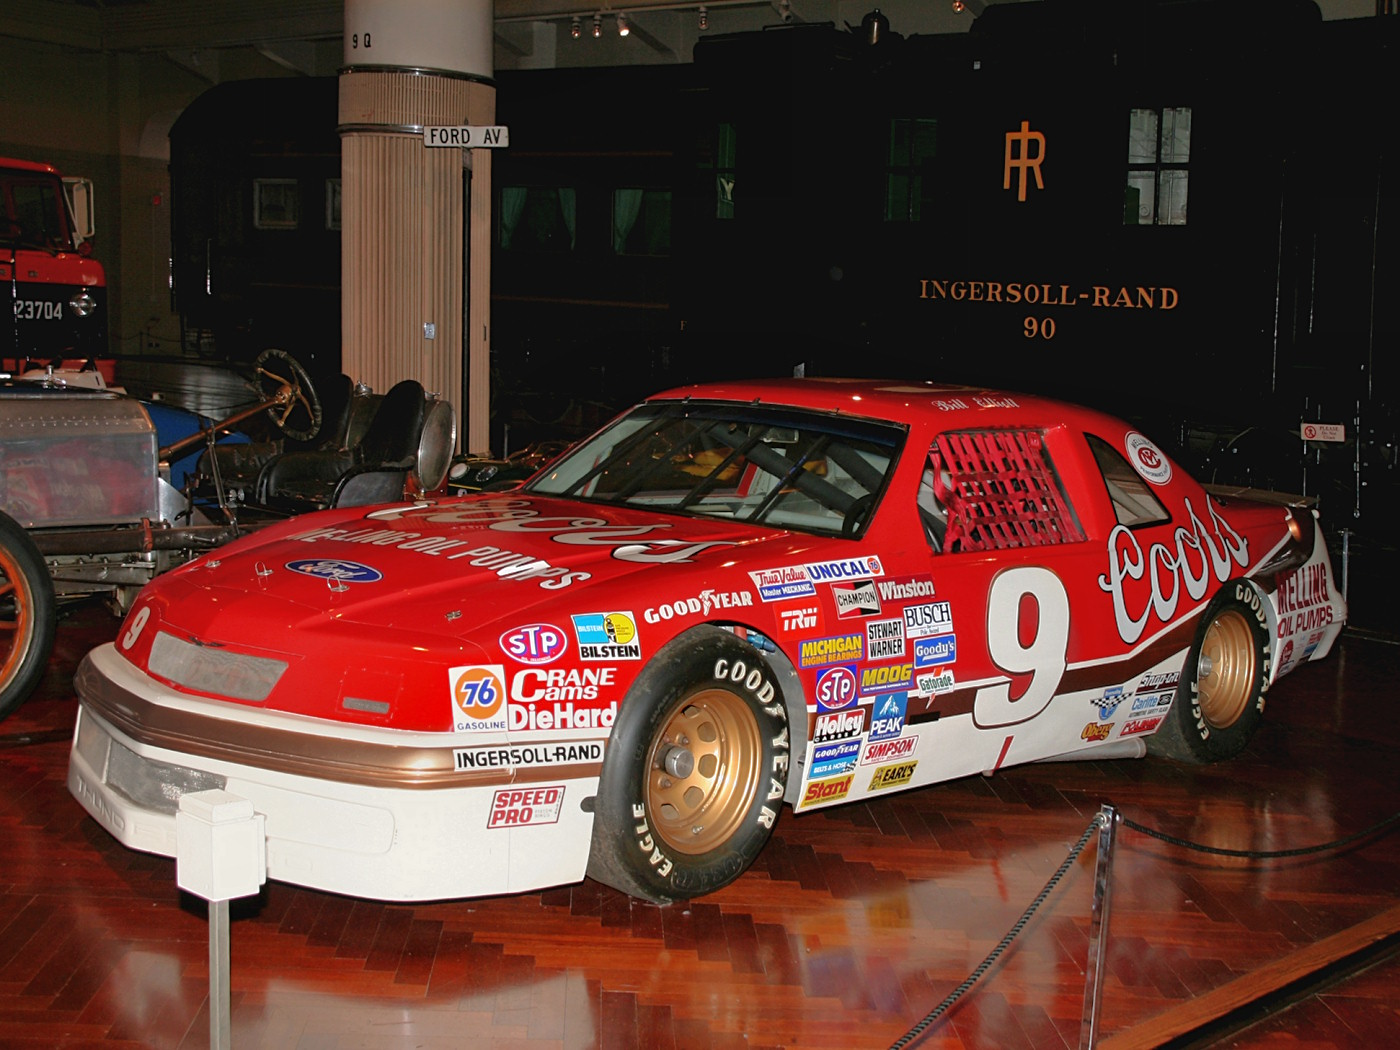 1987 Ford Thunderbird NASCAR Race Car Qualified By Bill Elliott At 212 8 MPH Fvl H Ford Museum CS